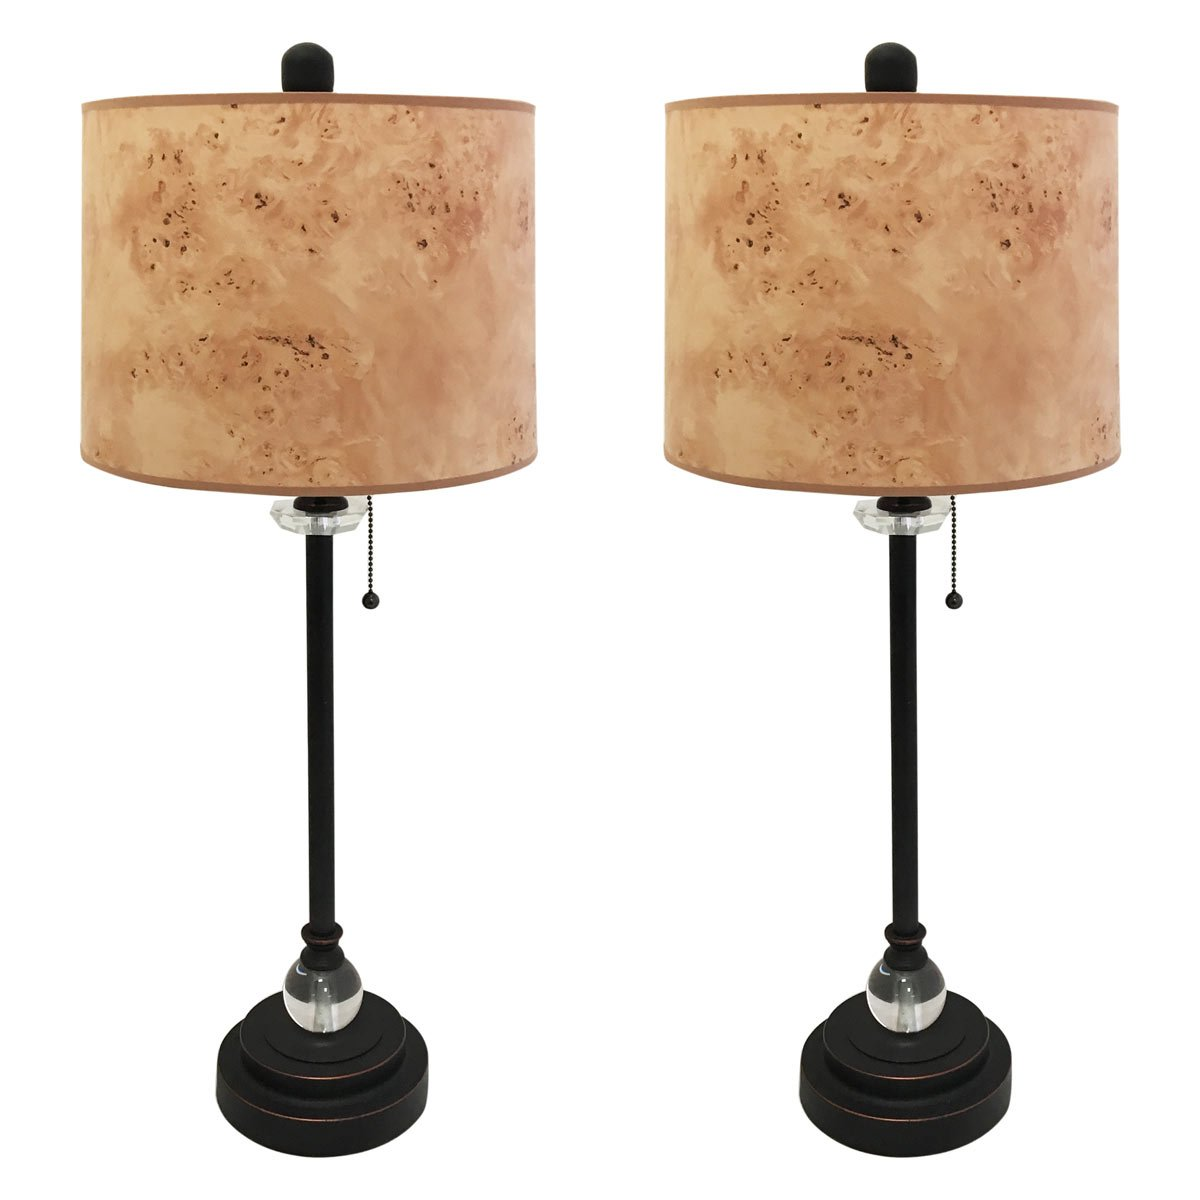 Royal Designs 28'' Crystal and Oil Rub Bronze Buffet Lamp with Light Brown Wood Texture Hardback Lamp Shade, Set of 2 by Royal Designs, Inc